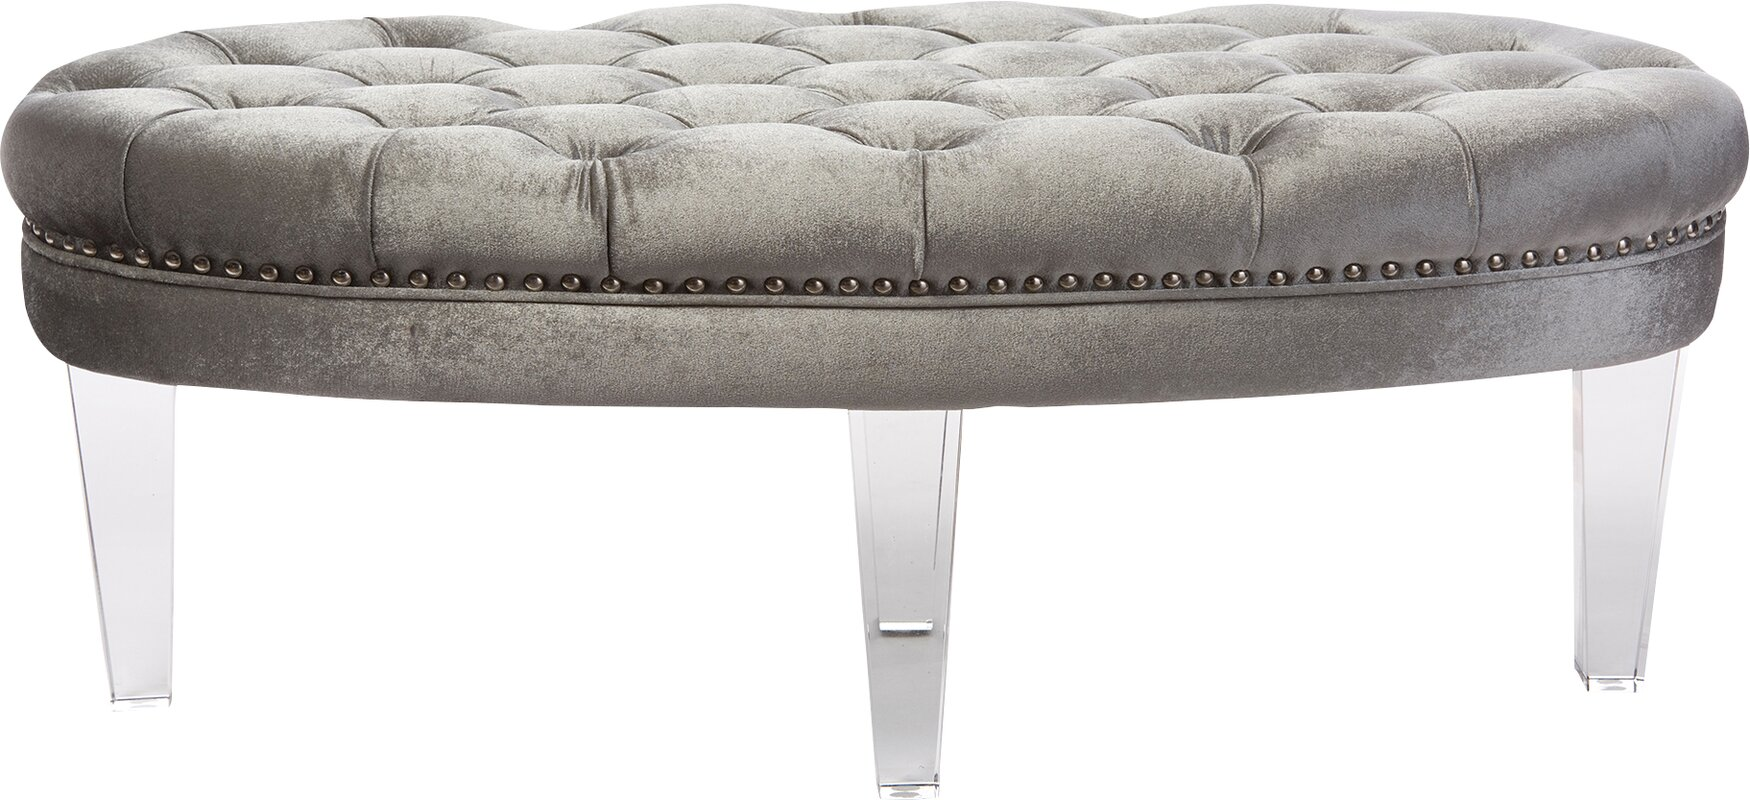 Baxton studio brighton button tufted upholstered modern bedroom bench - Default_name